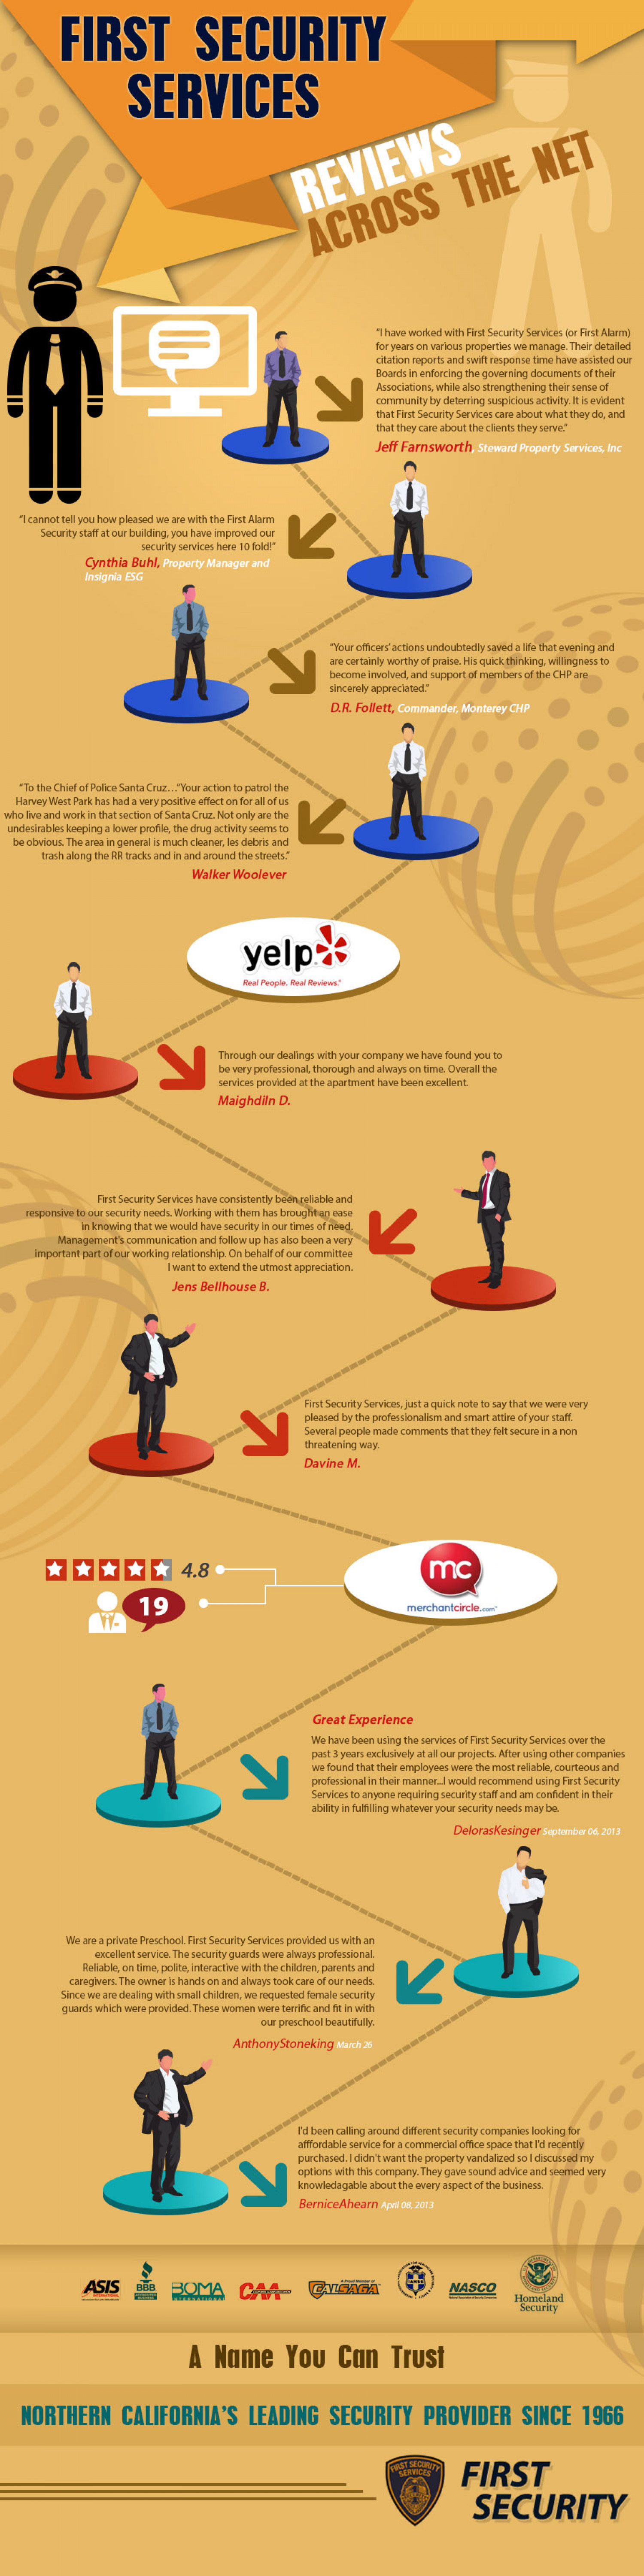 First Security Services: Reviews Across The Net Infographic